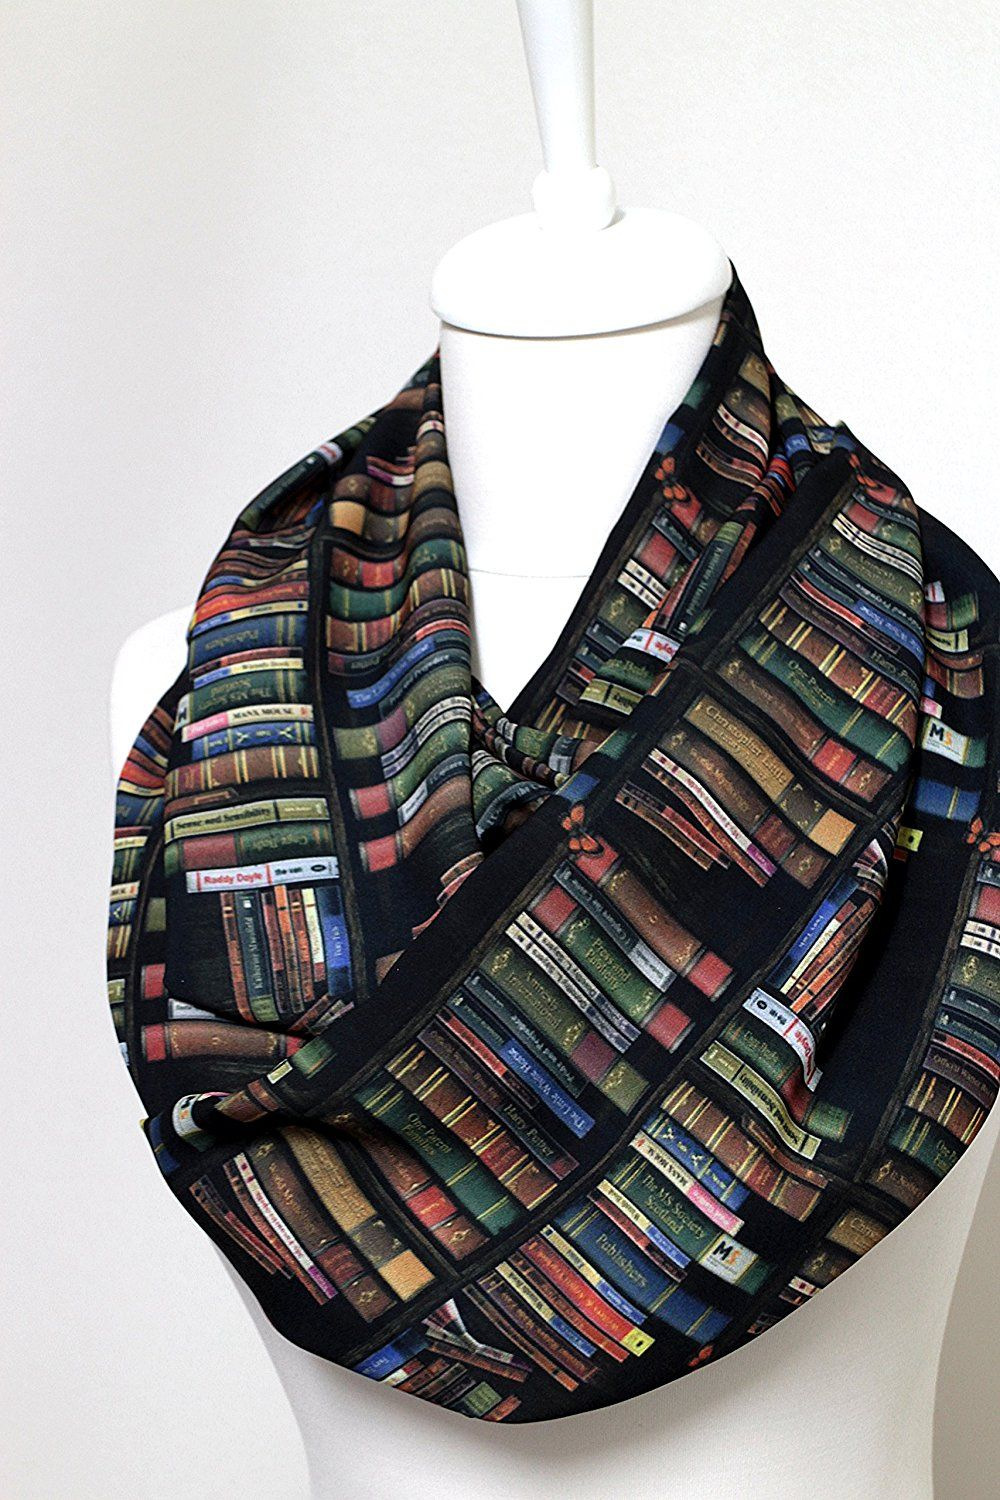 40 OFF Handmade Library Bookshelves Infinity Scarf